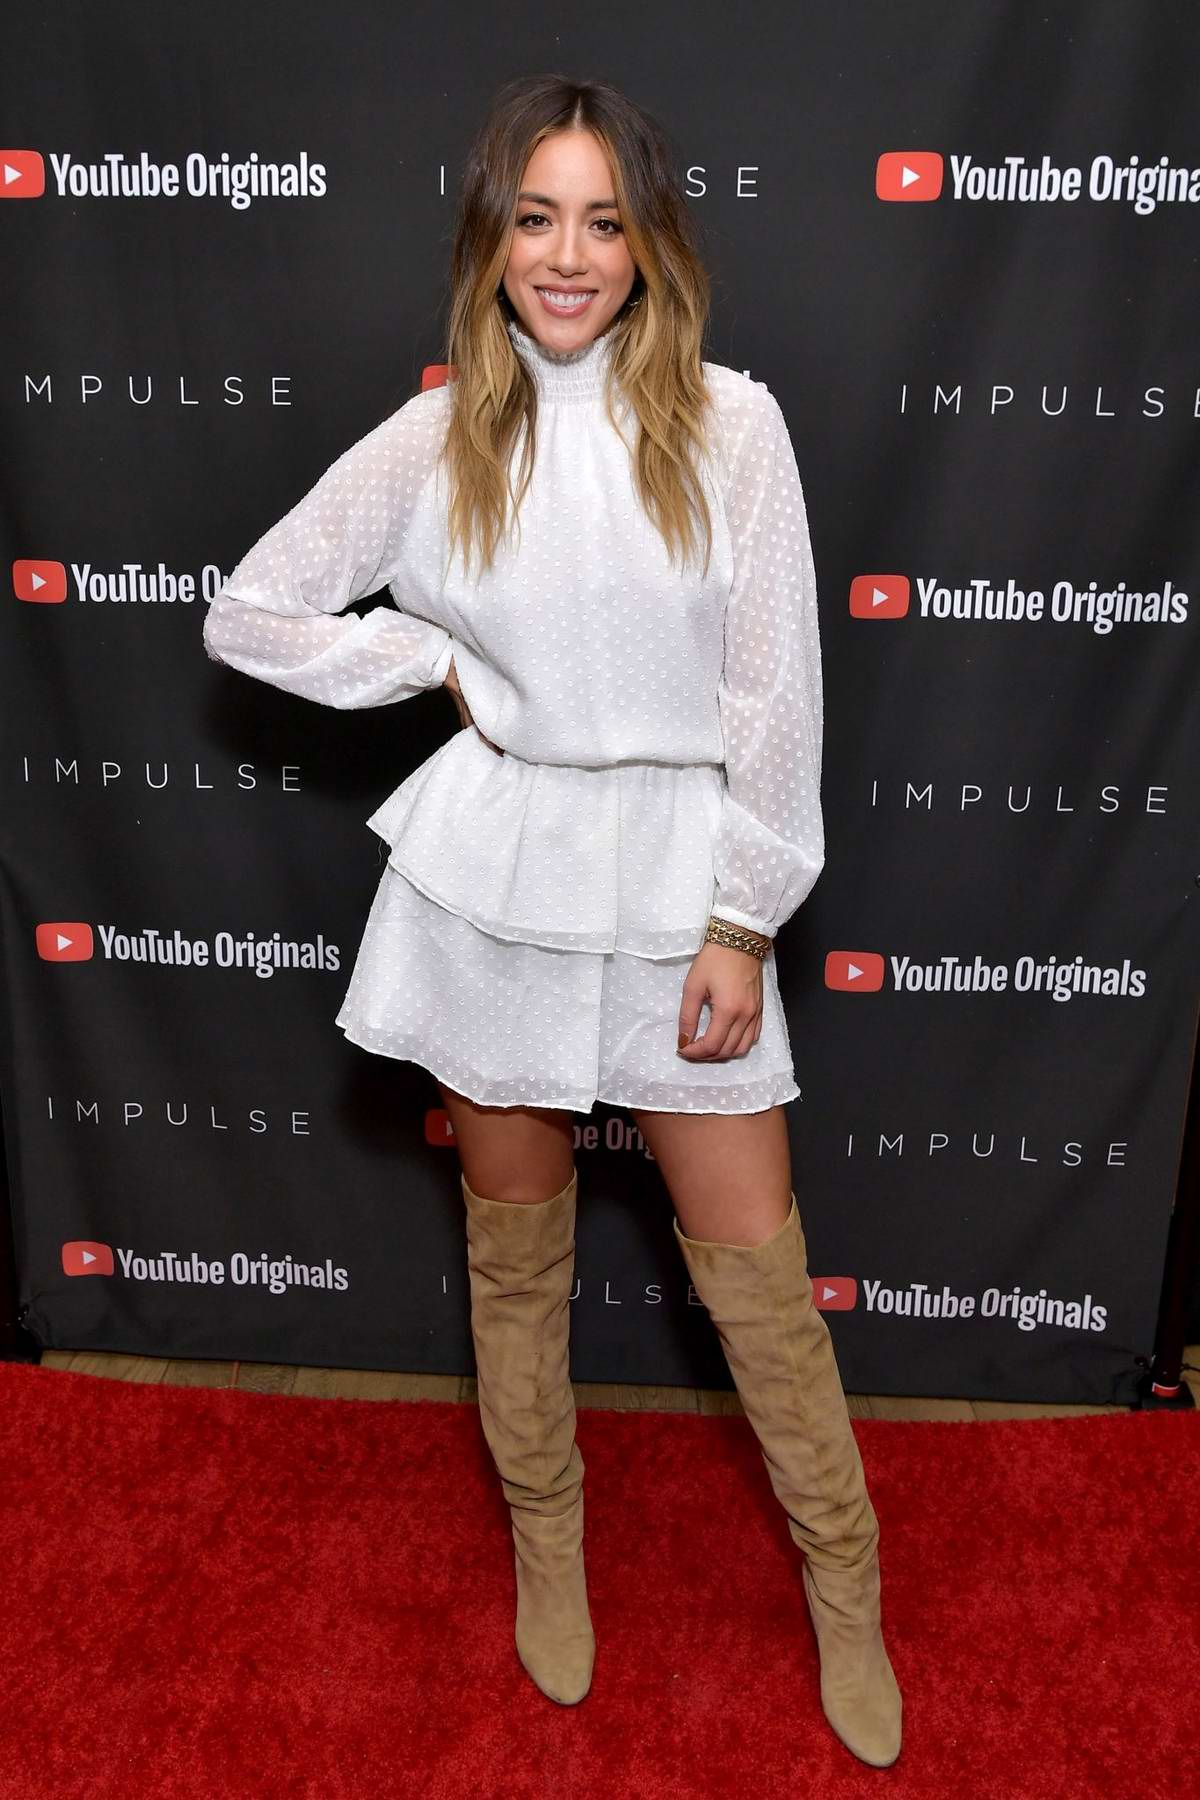 Chloe Bennet attends Youtube Originals hosts a special screening of Impulse Season 2 in West Hollywood, Los Angeles